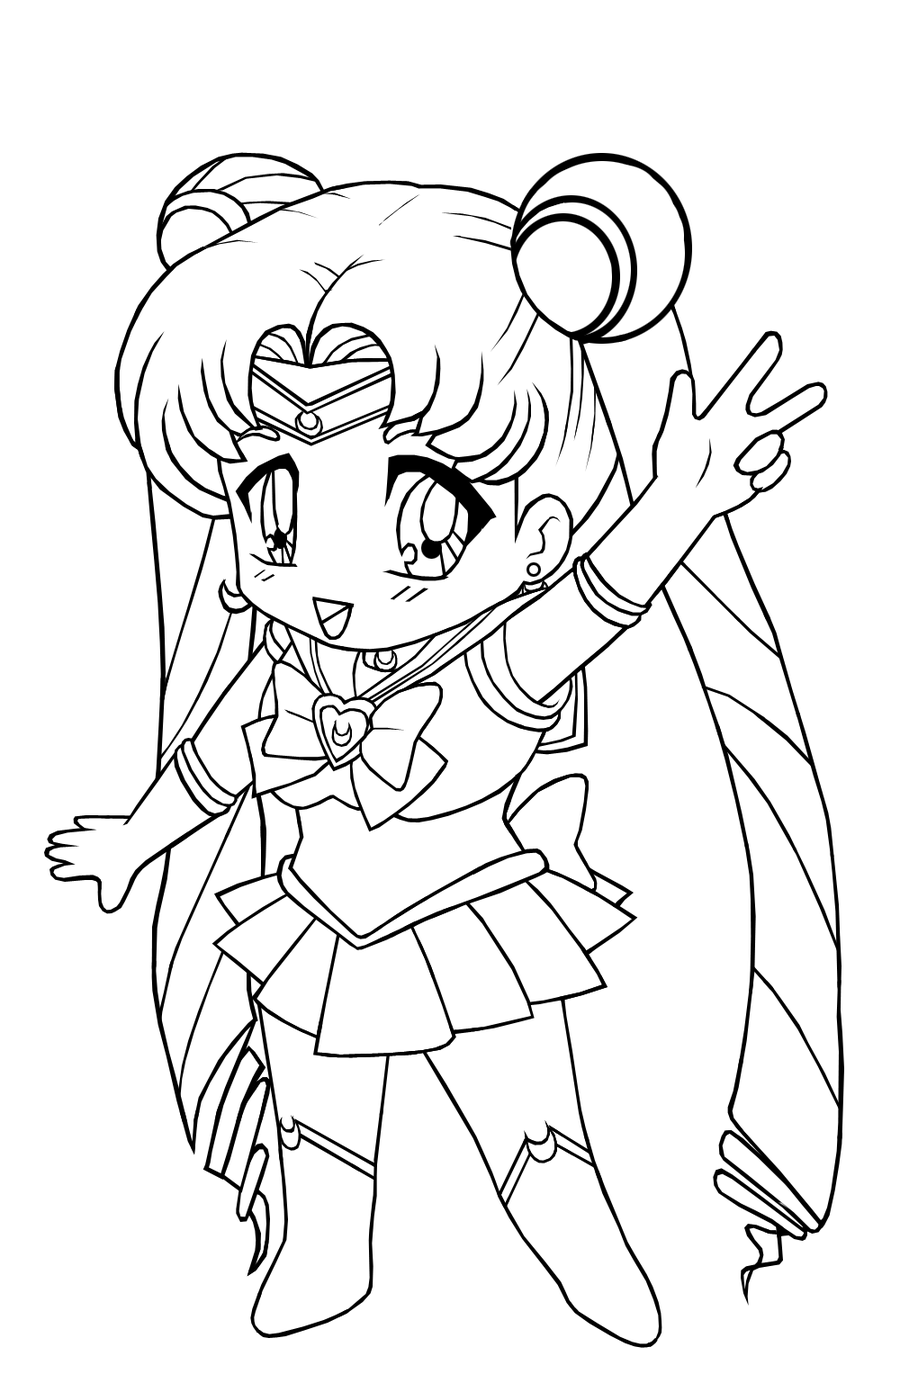 coloring pages for kids girls coloring pages for girls best coloring pages for kids pages girls for kids coloring